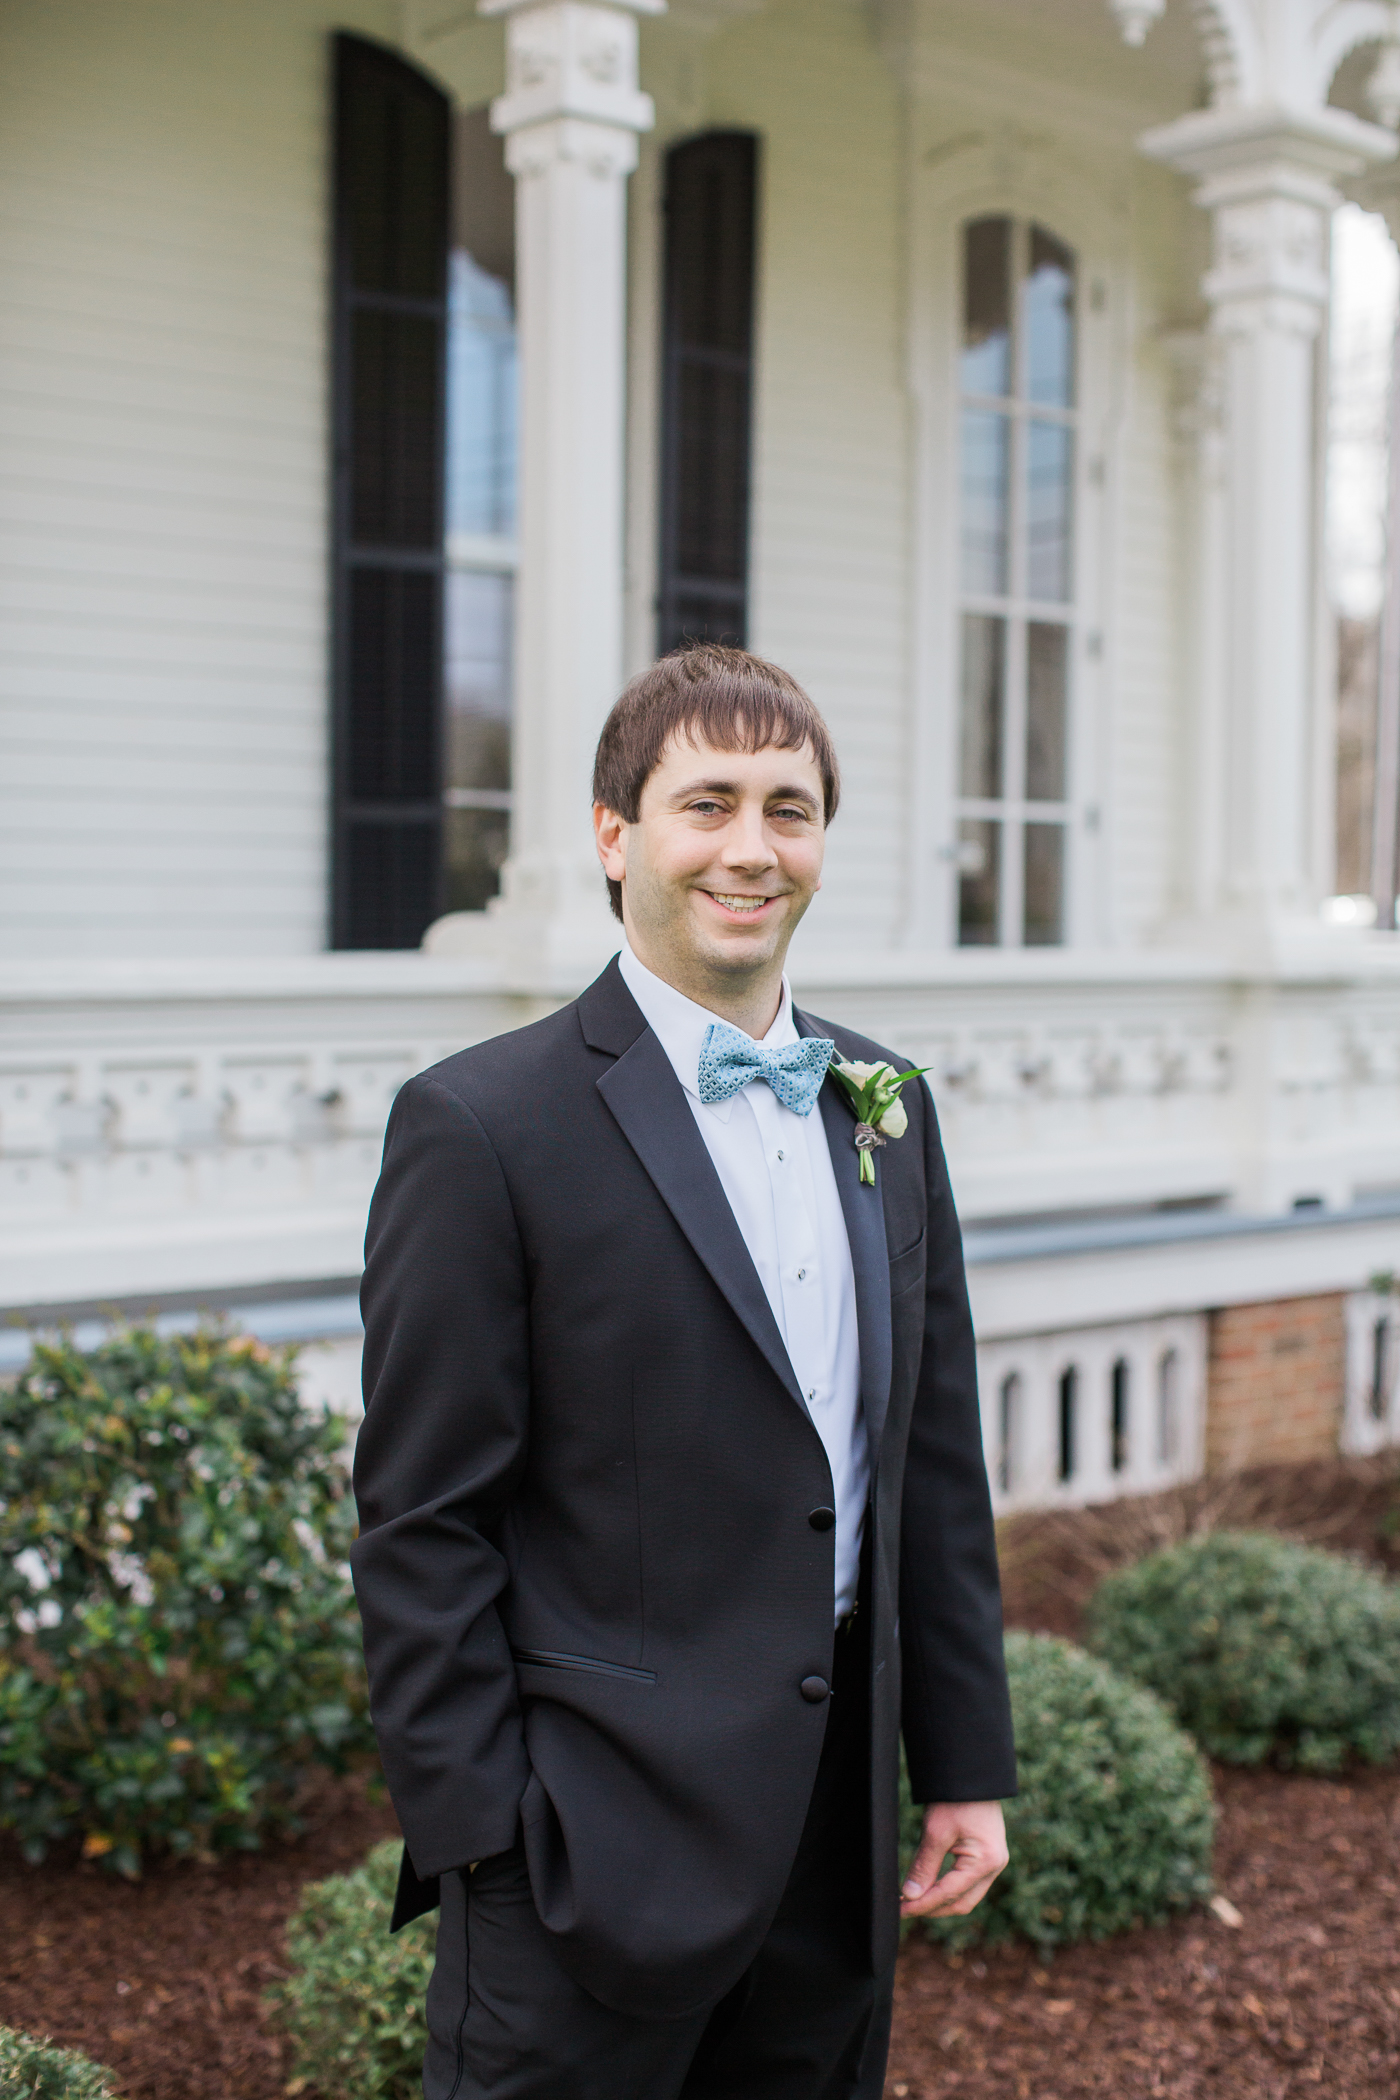 merrimon-wynne-wedding-19